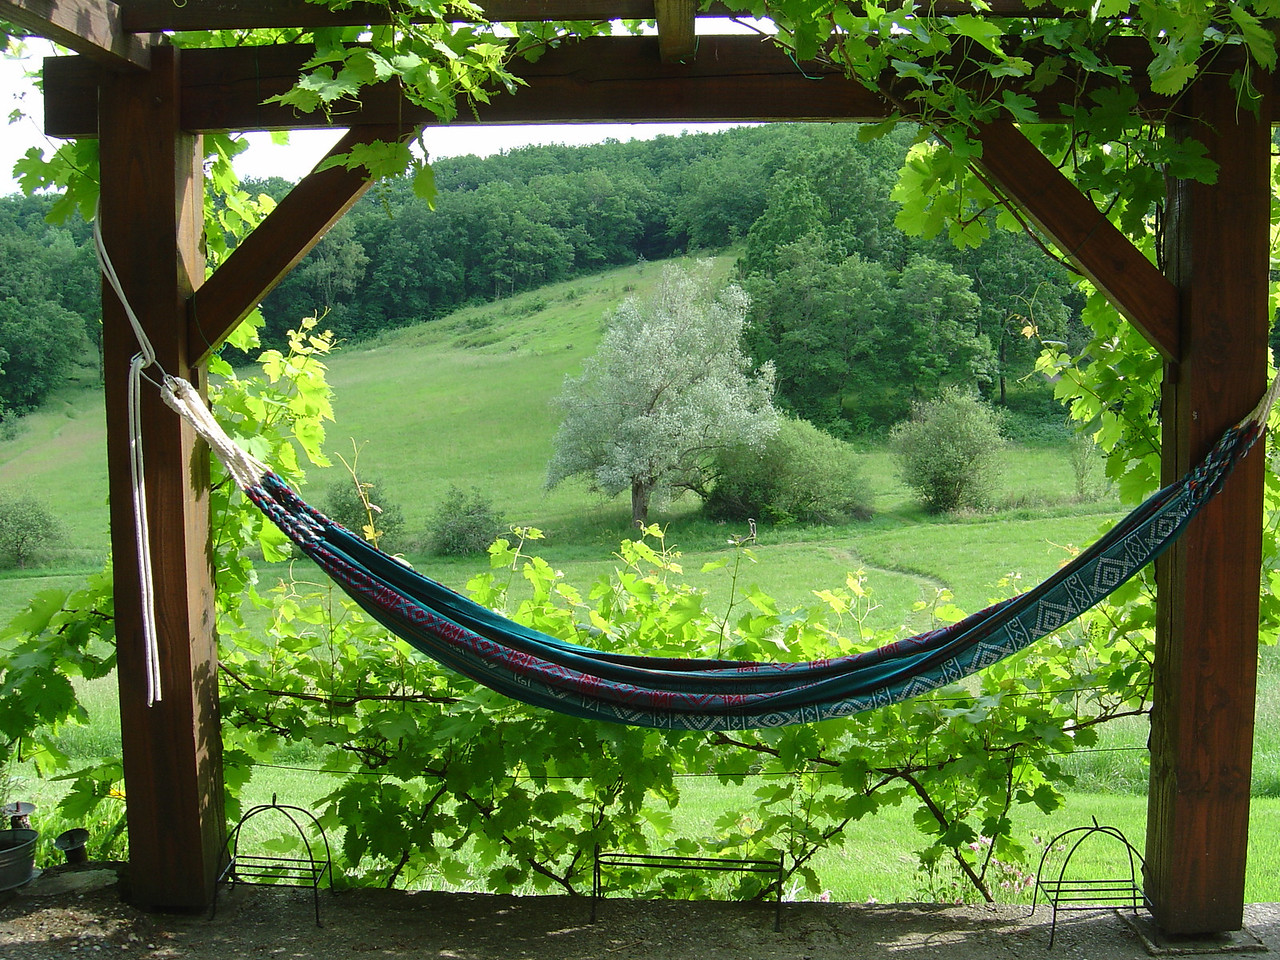 A view across a hammock strung between two posts of the arbor over the stable front.